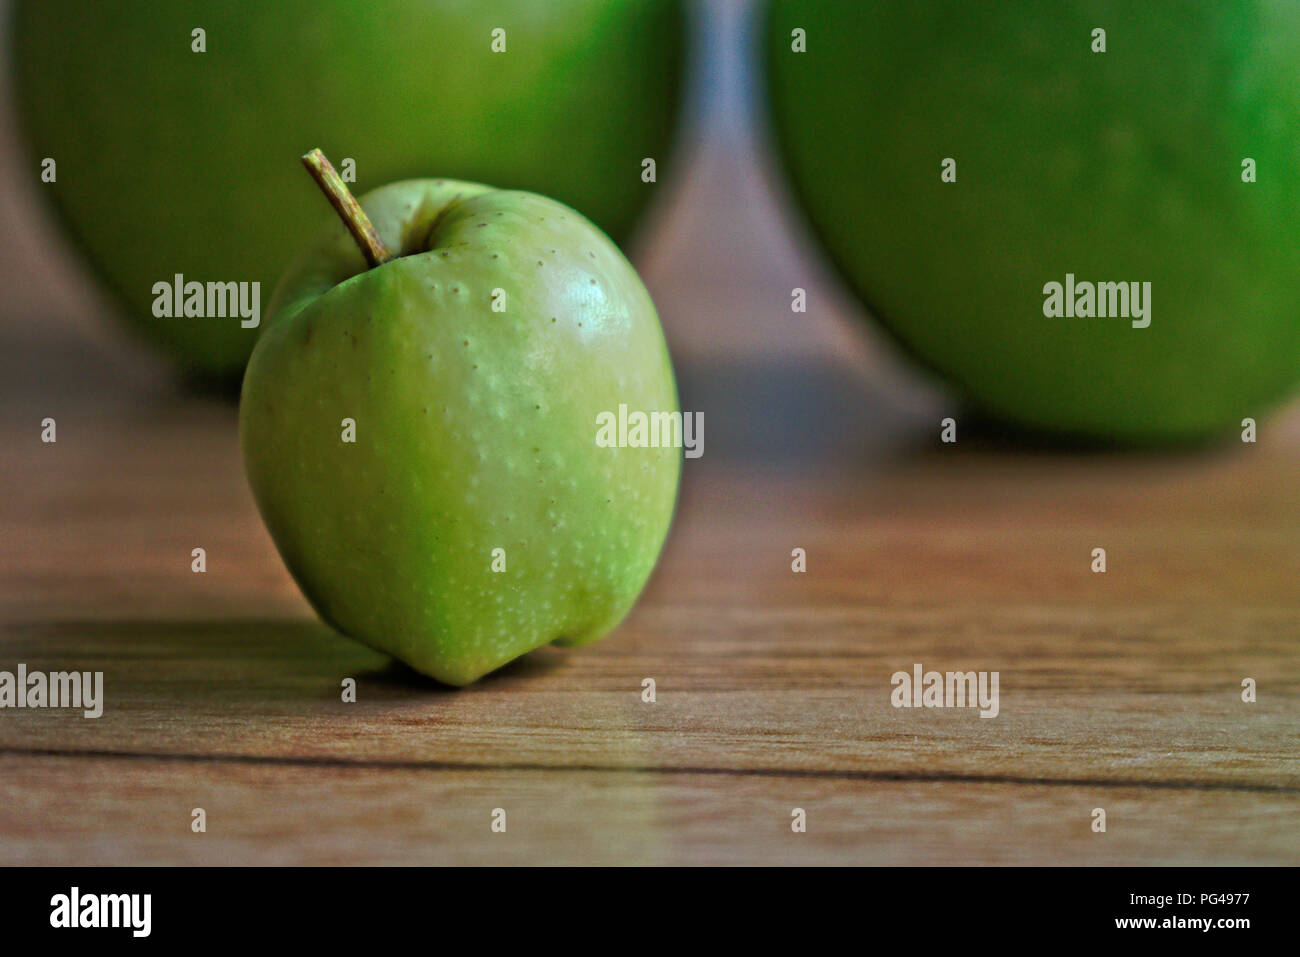 Closeup of green apples on a wooden table - Stock Image